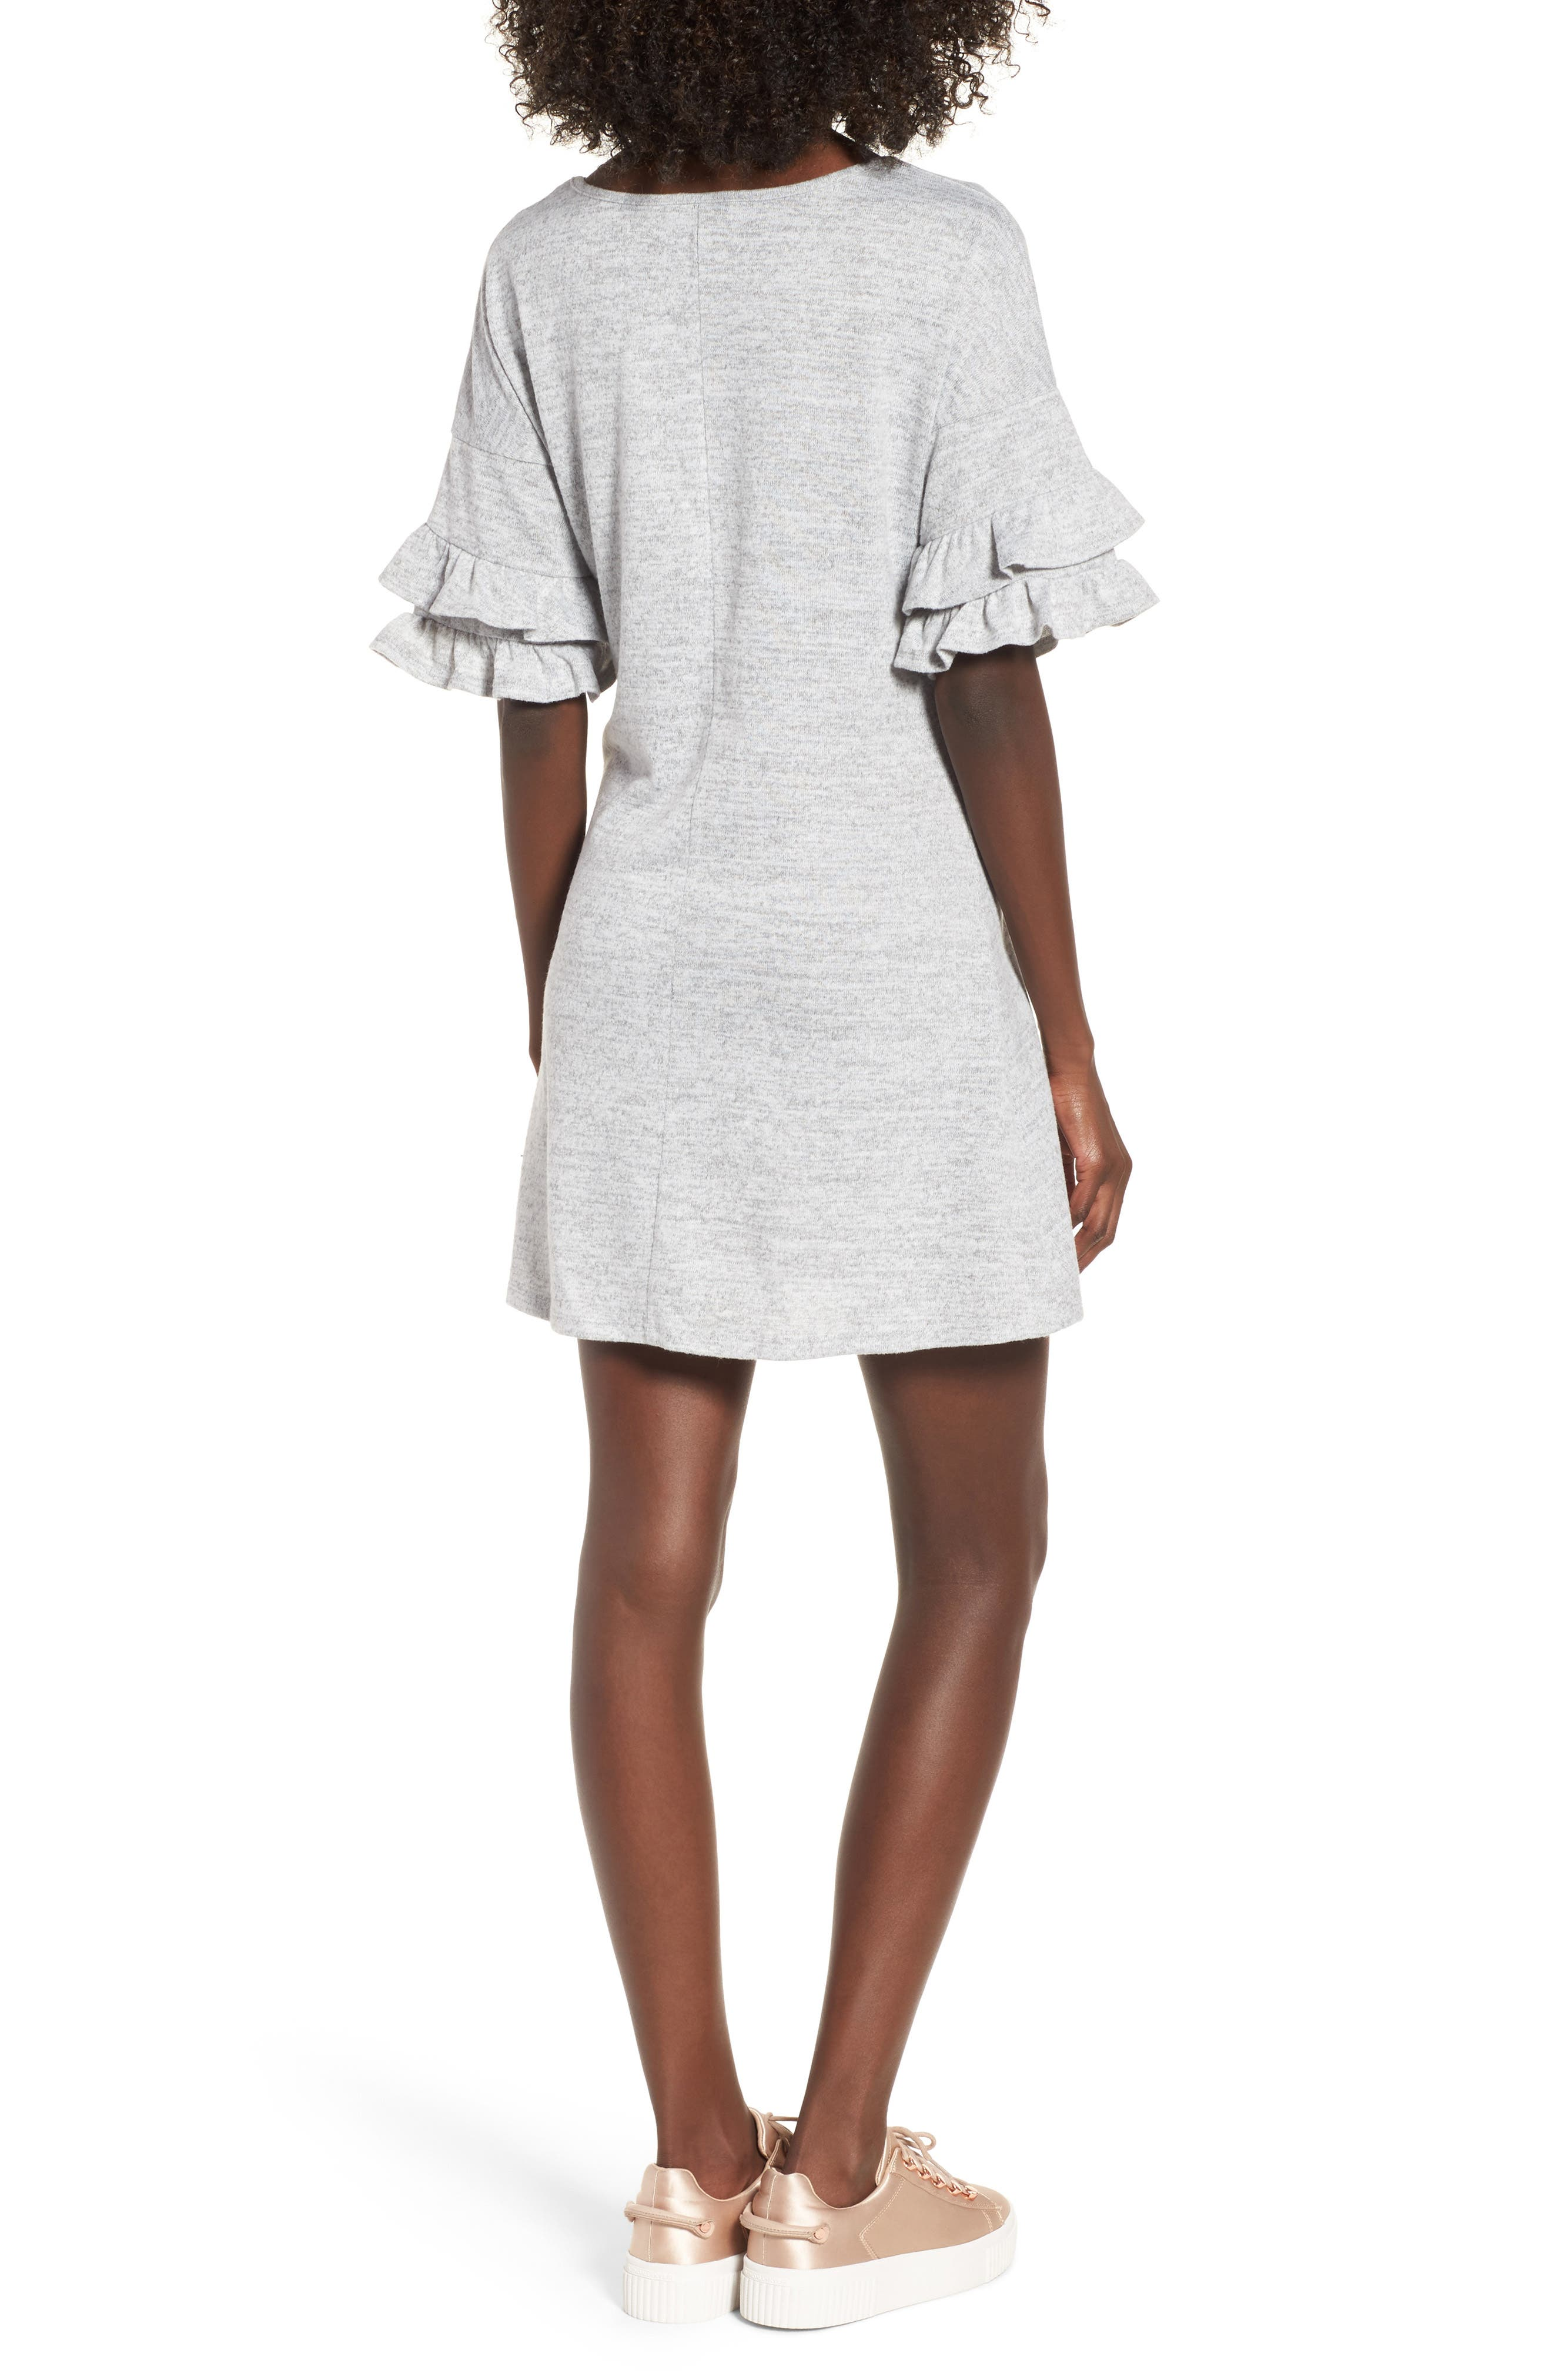 Ruffle Sleeve Sweatshirt Dress,                             Alternate thumbnail 2, color,